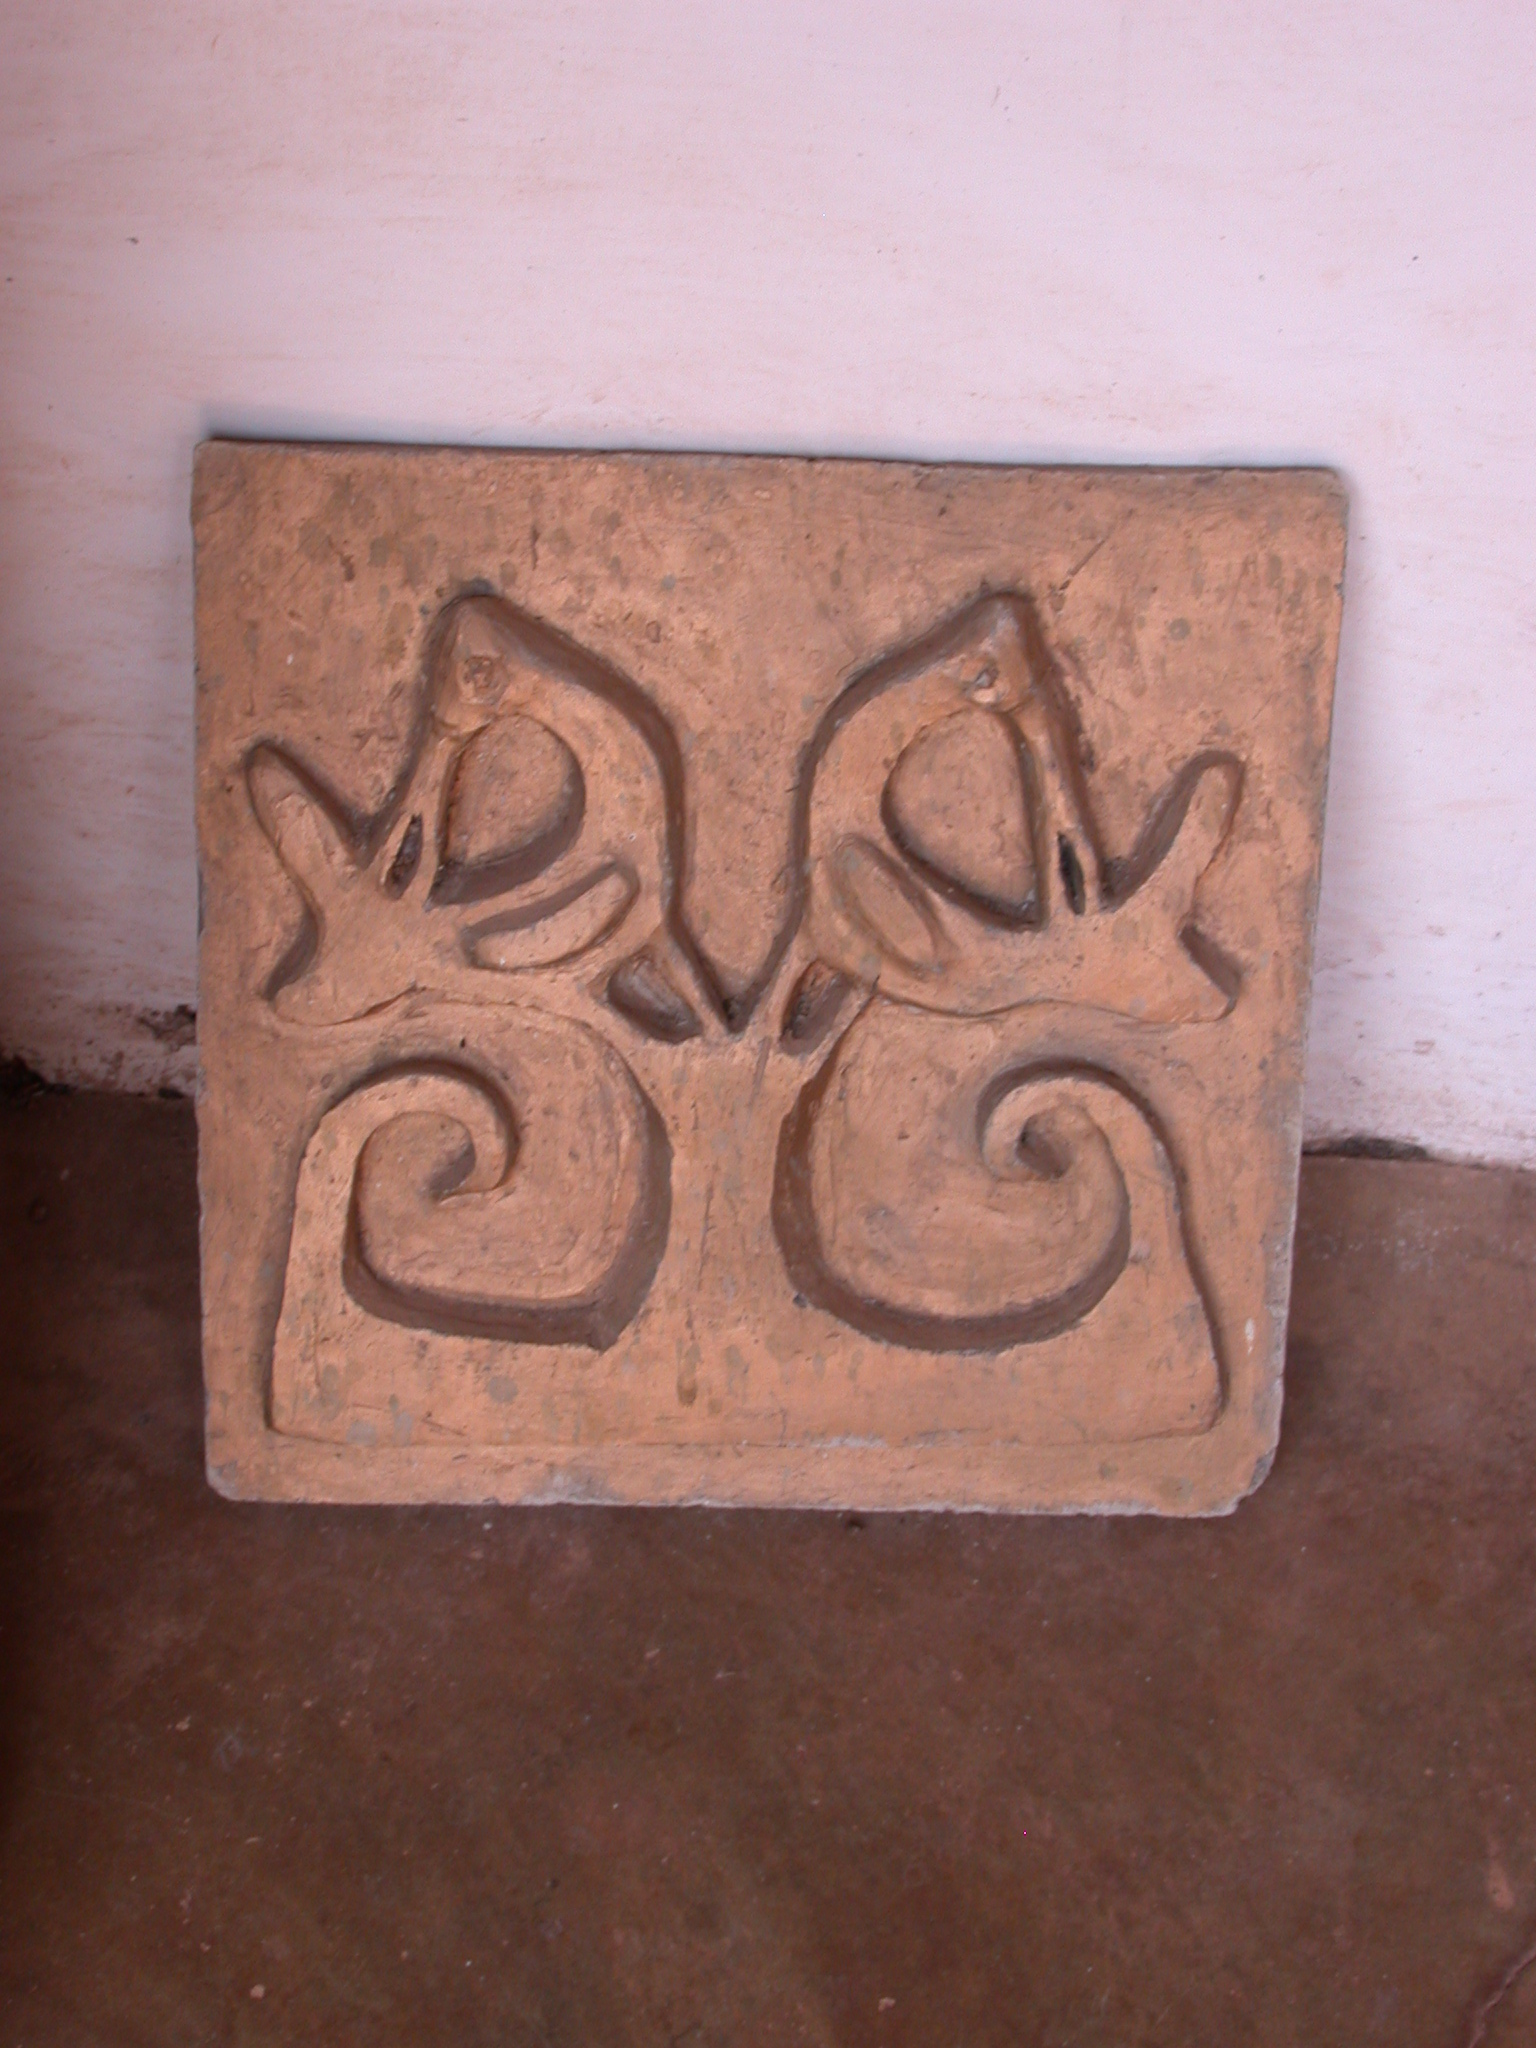 Asante Traditional Shrine Design Incorporating Birds, Asante Traditional Shrine at Ejisu-Besease, Ghana